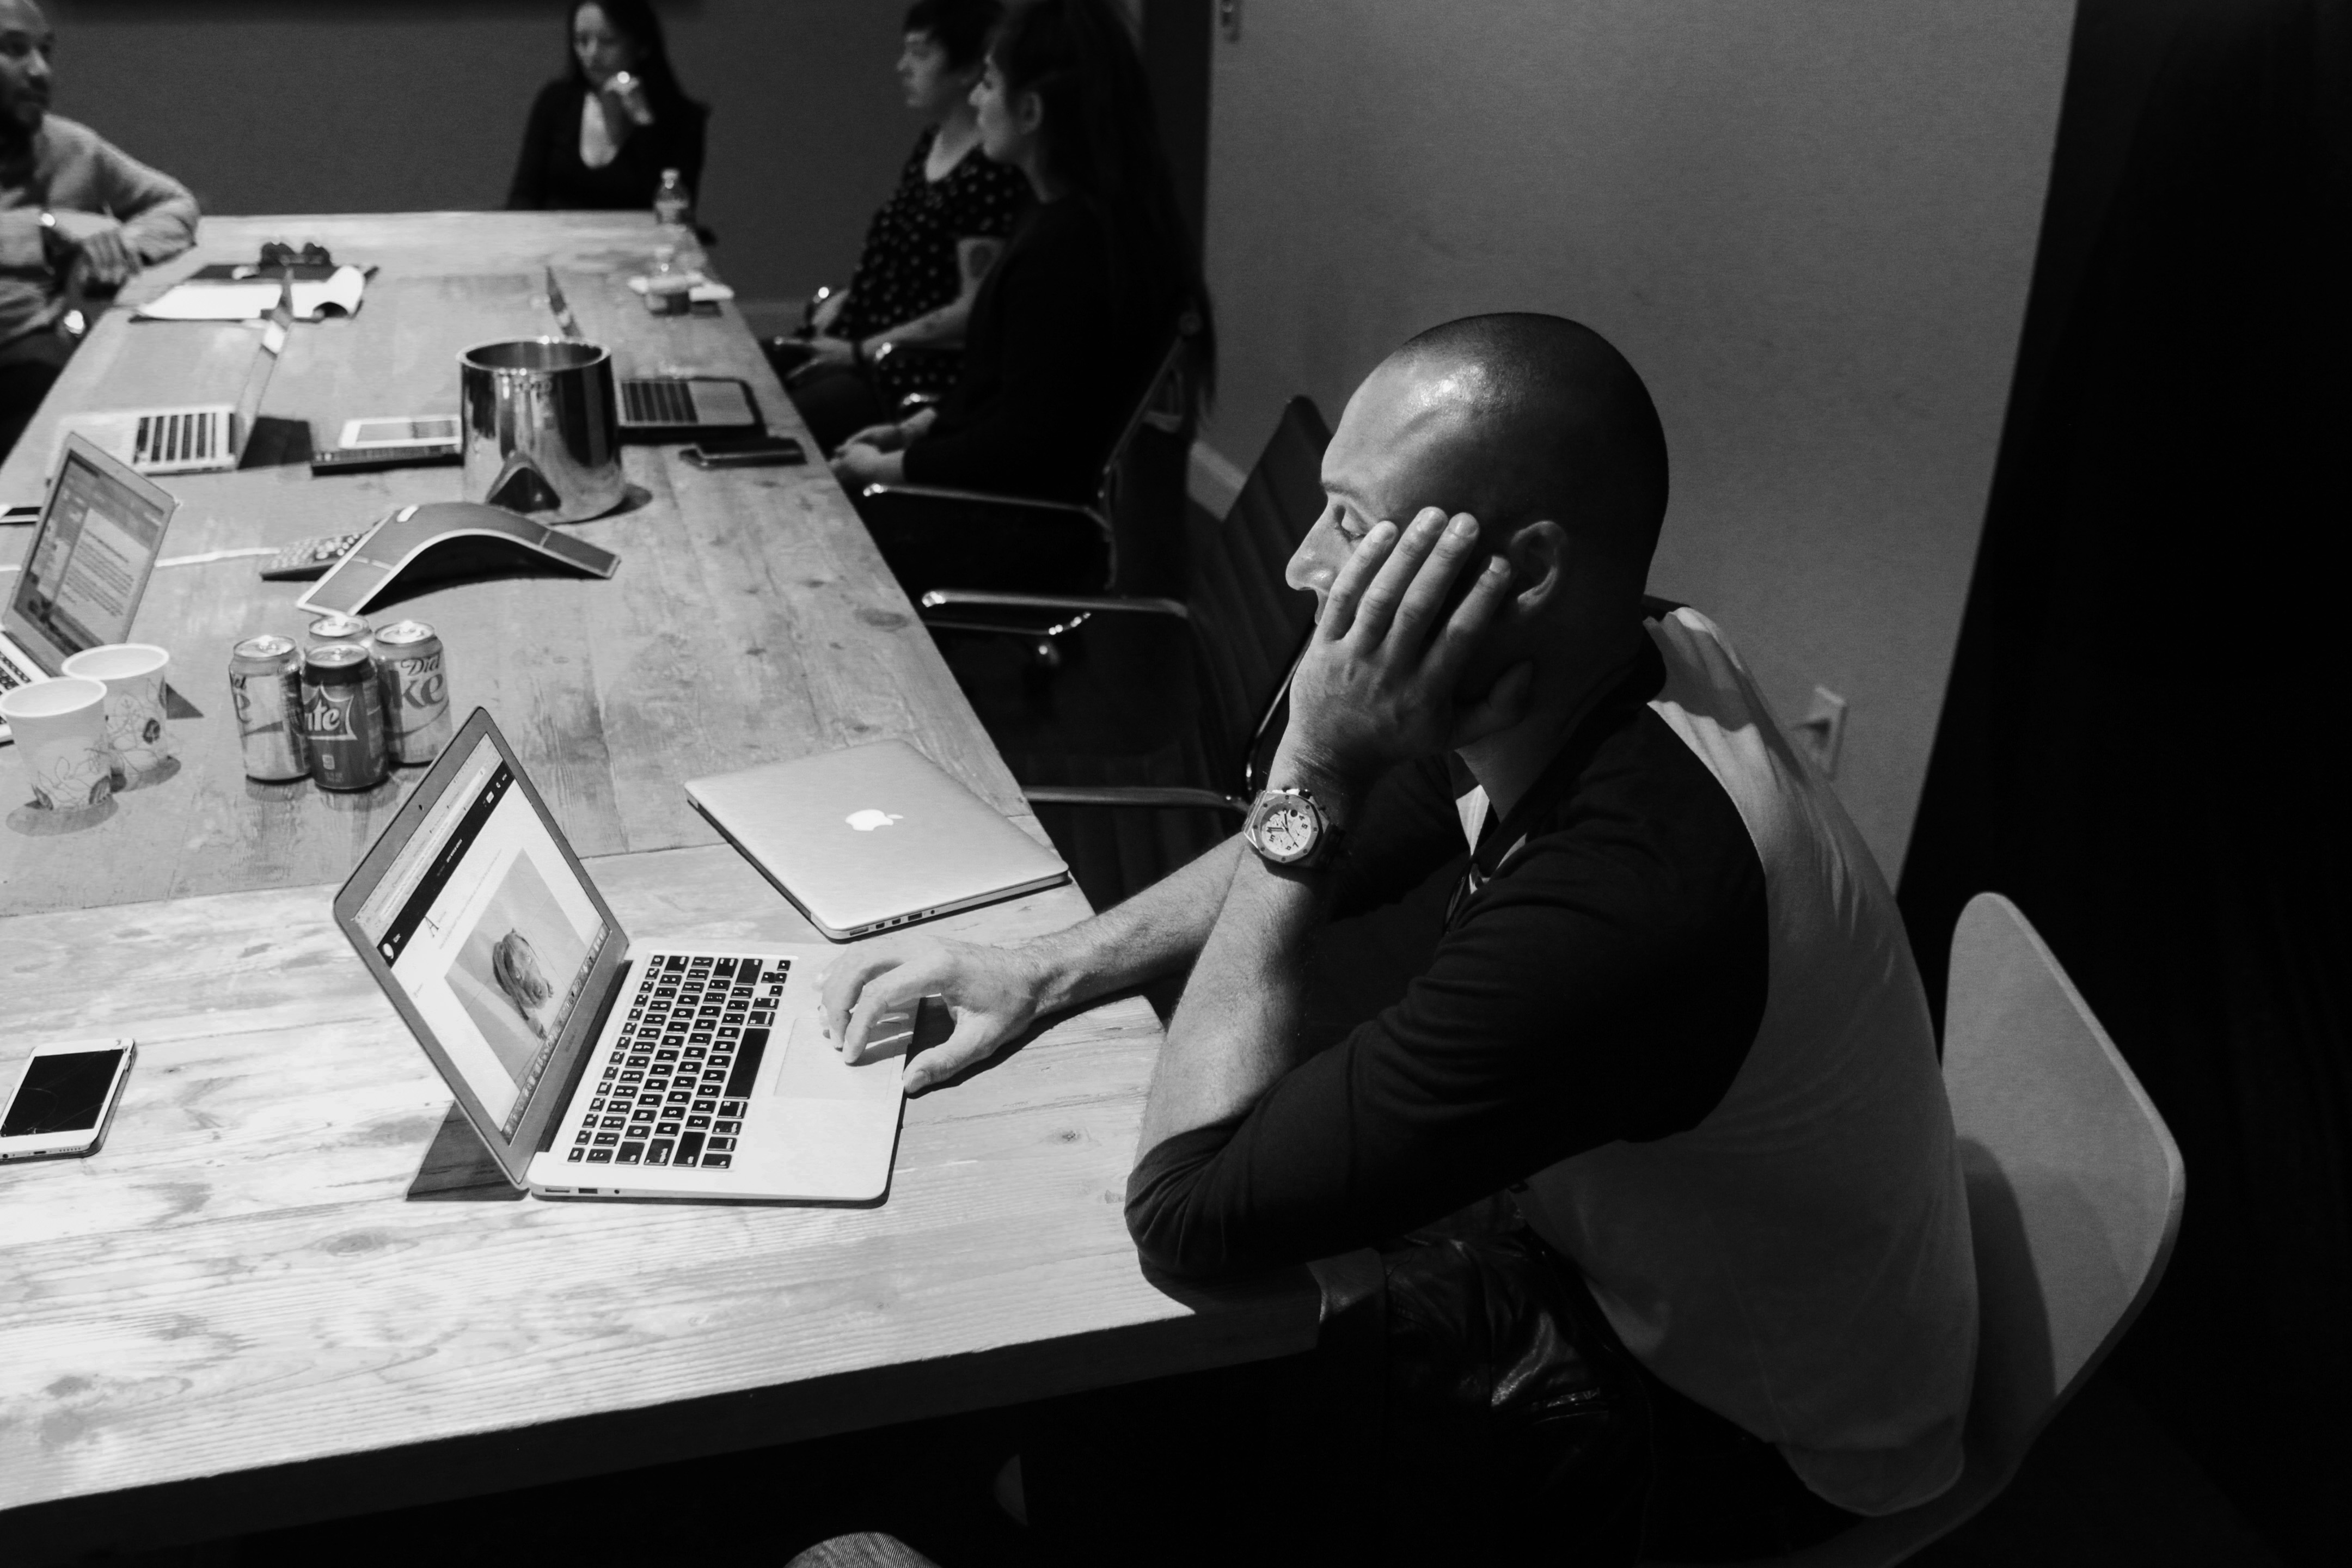 Derek Jeter works at The Players' Tribune offices in New York, NY on November 5, 2015. (Photo by Nate Gordon/The Players' Tribune)